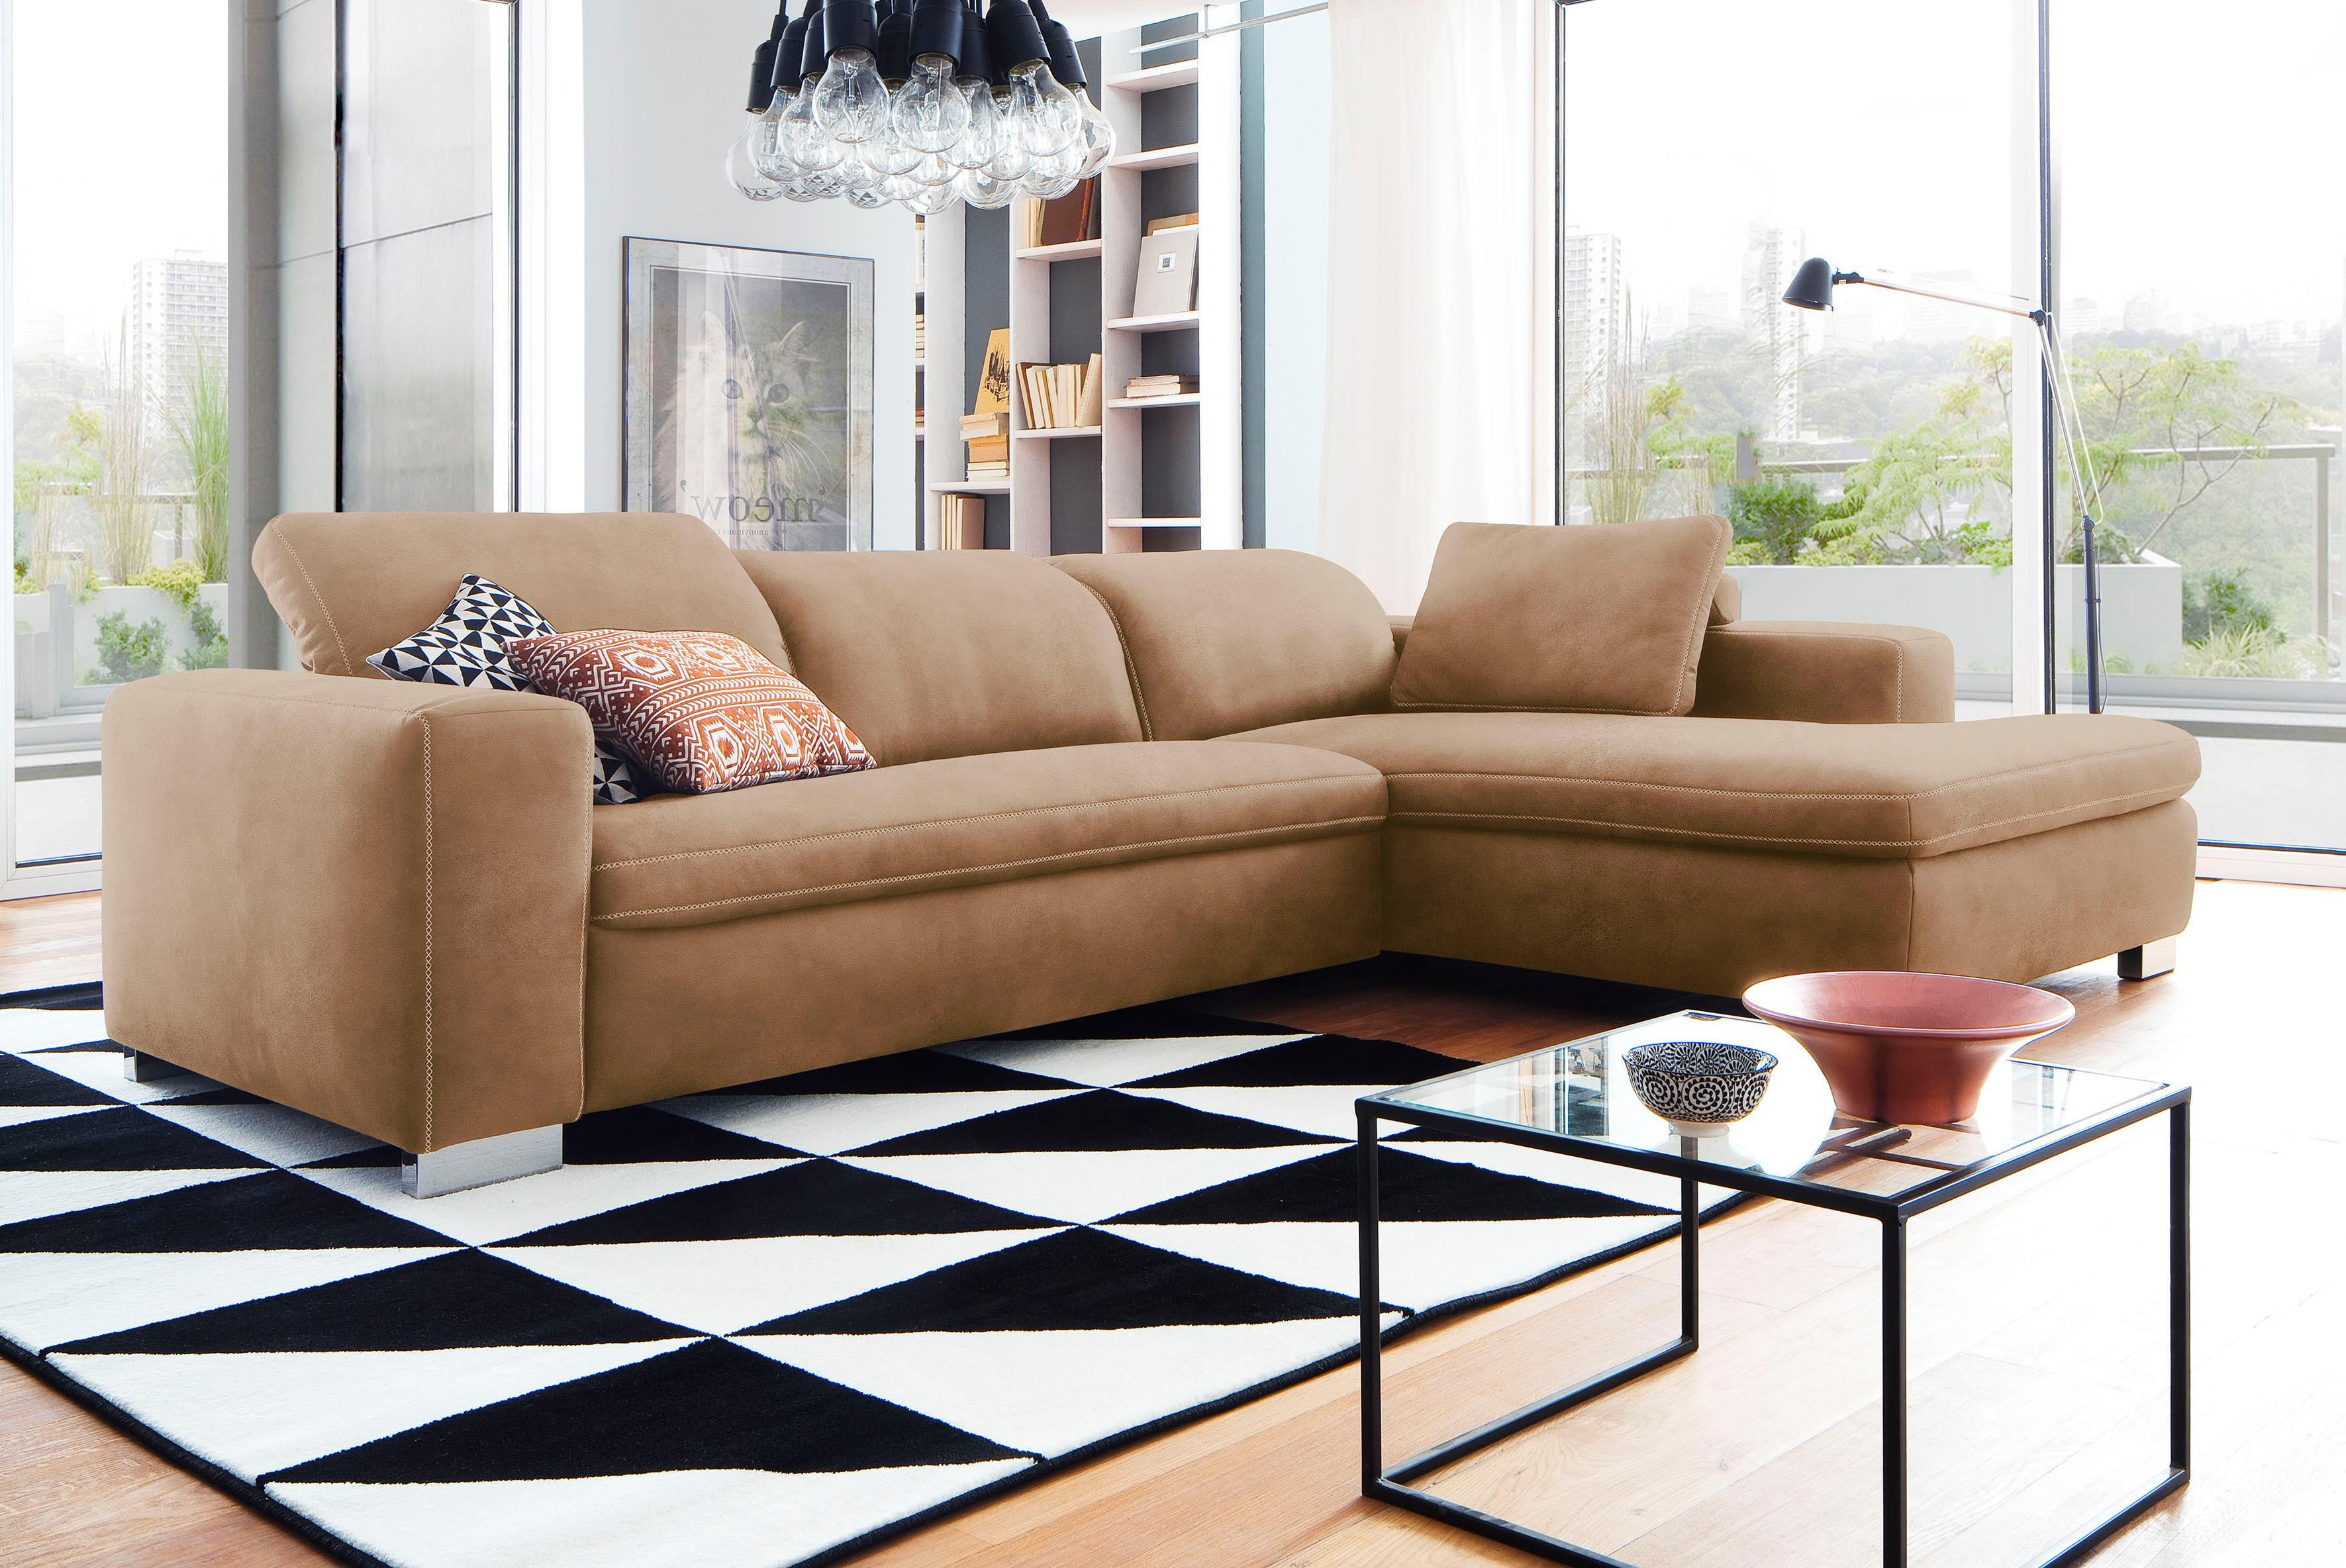 Places of Style Ecksofa Venetio